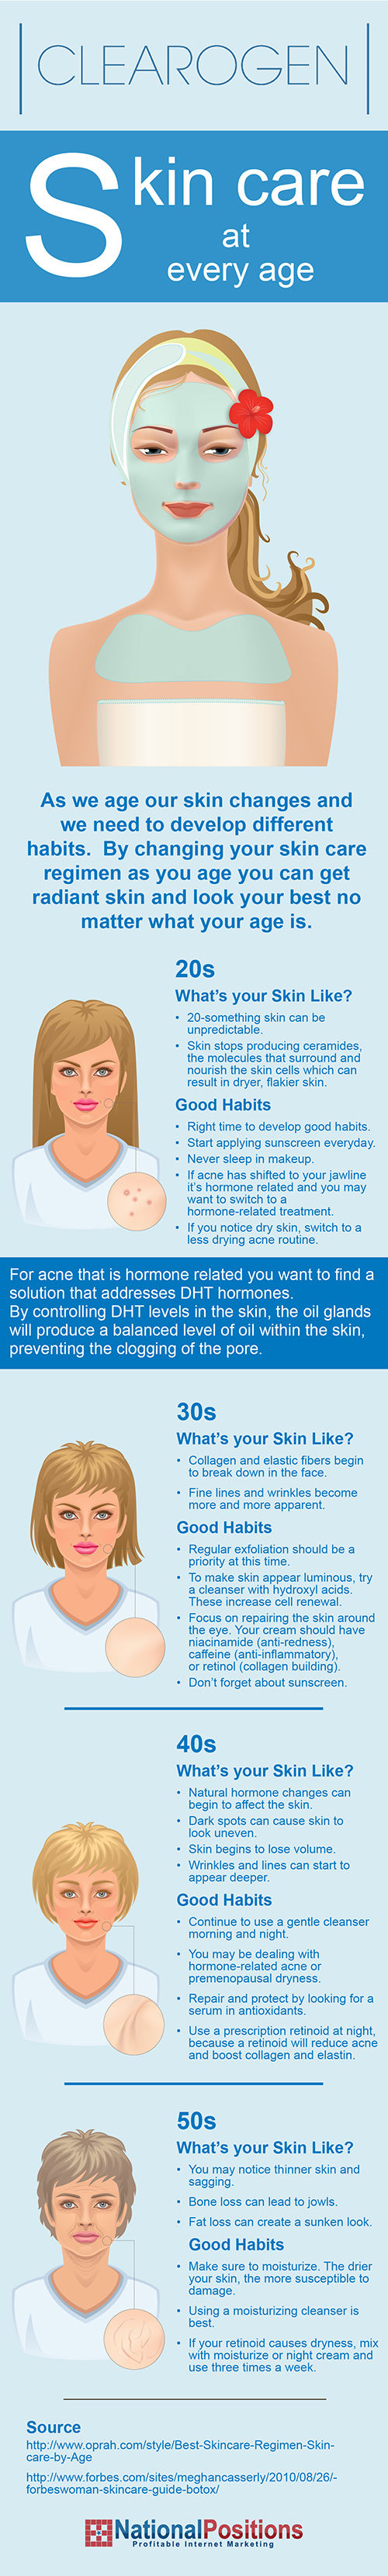 Beauty infographic. #organicmakeupinfographic Beauty infographic.